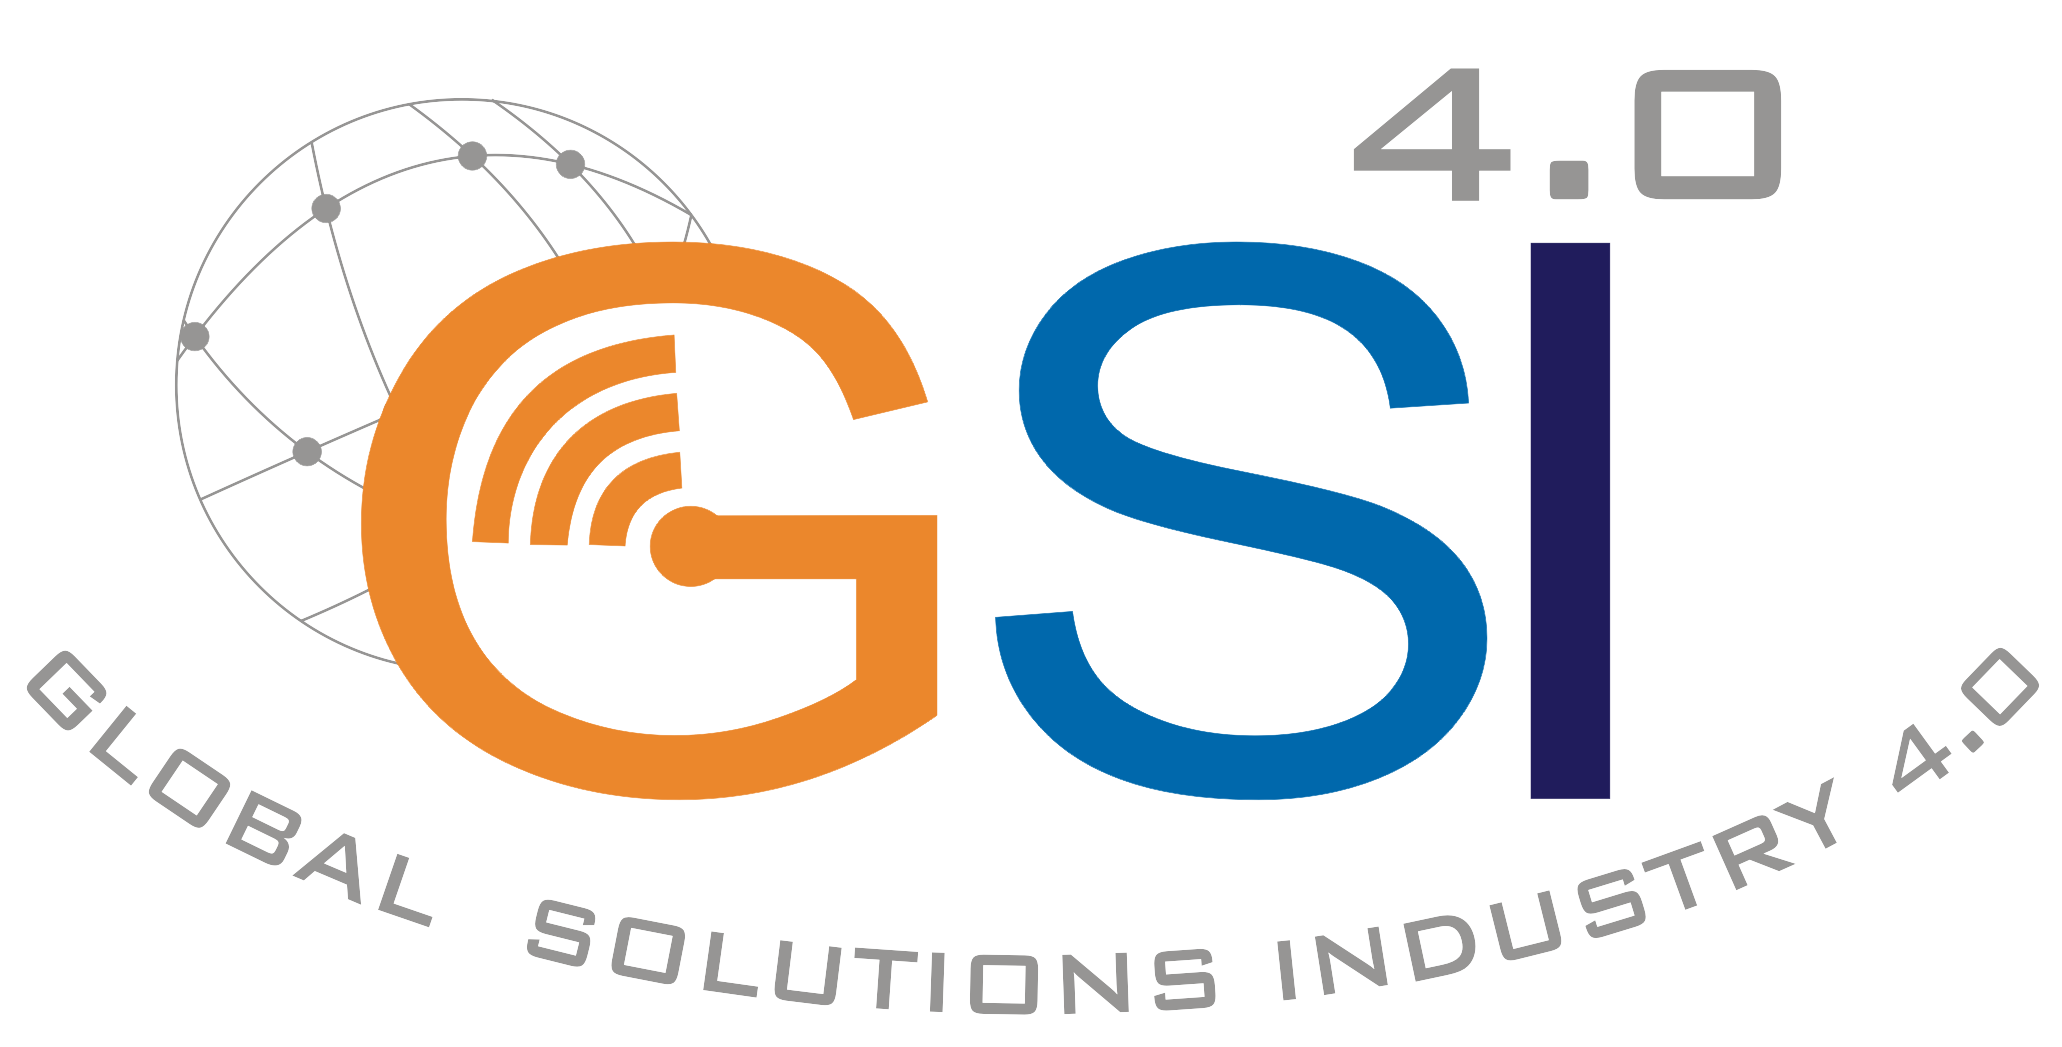 GSI Global Solutions Industry 4.0